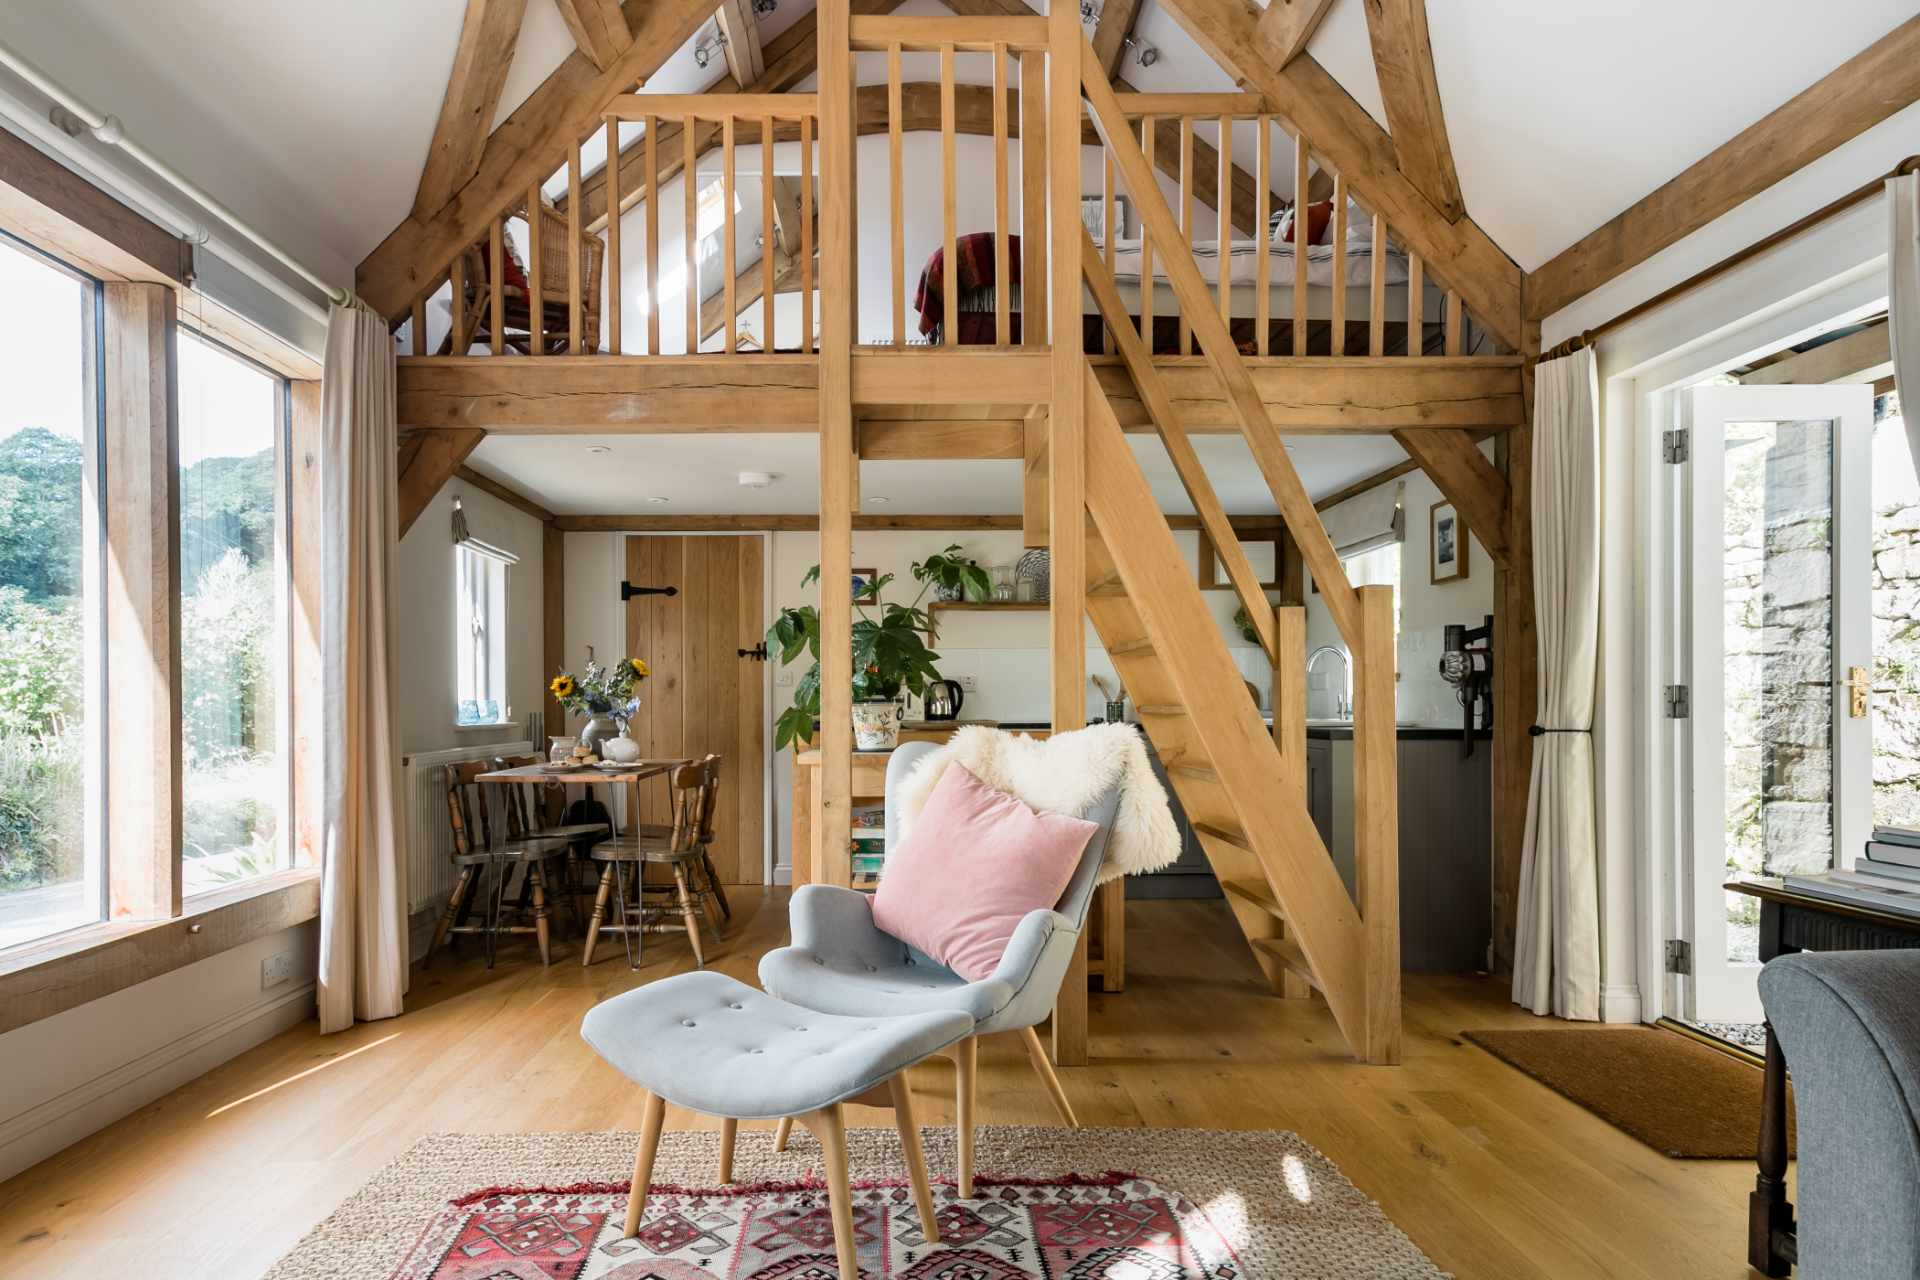 cosy-living-area-with-mezzanine-floor-in-little-trenant-barn-on-helford-river-near-constantine-best-airbnbs-in-cornwall